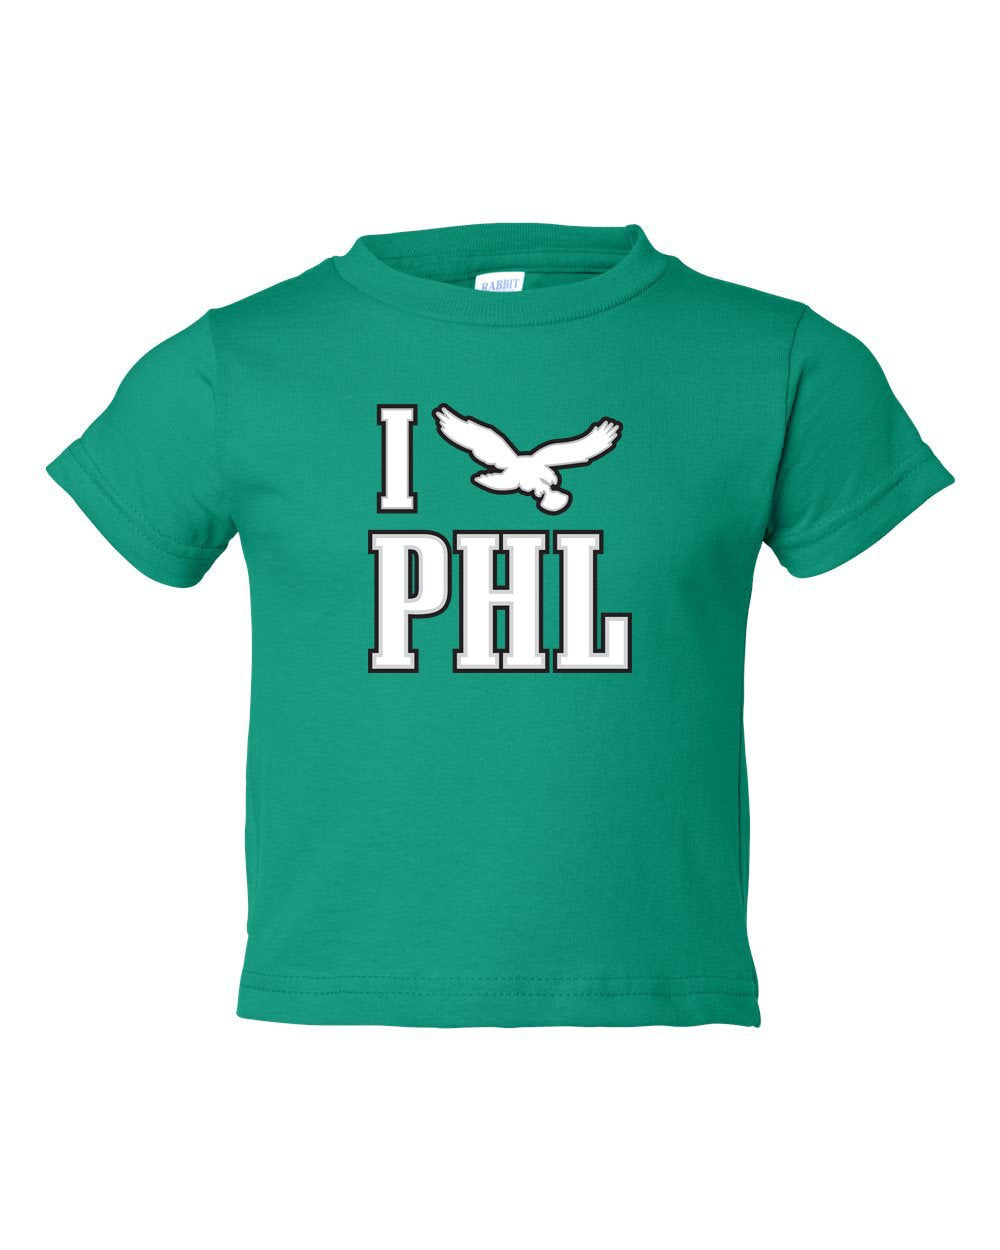 I PHL TODDLER T-Shirt